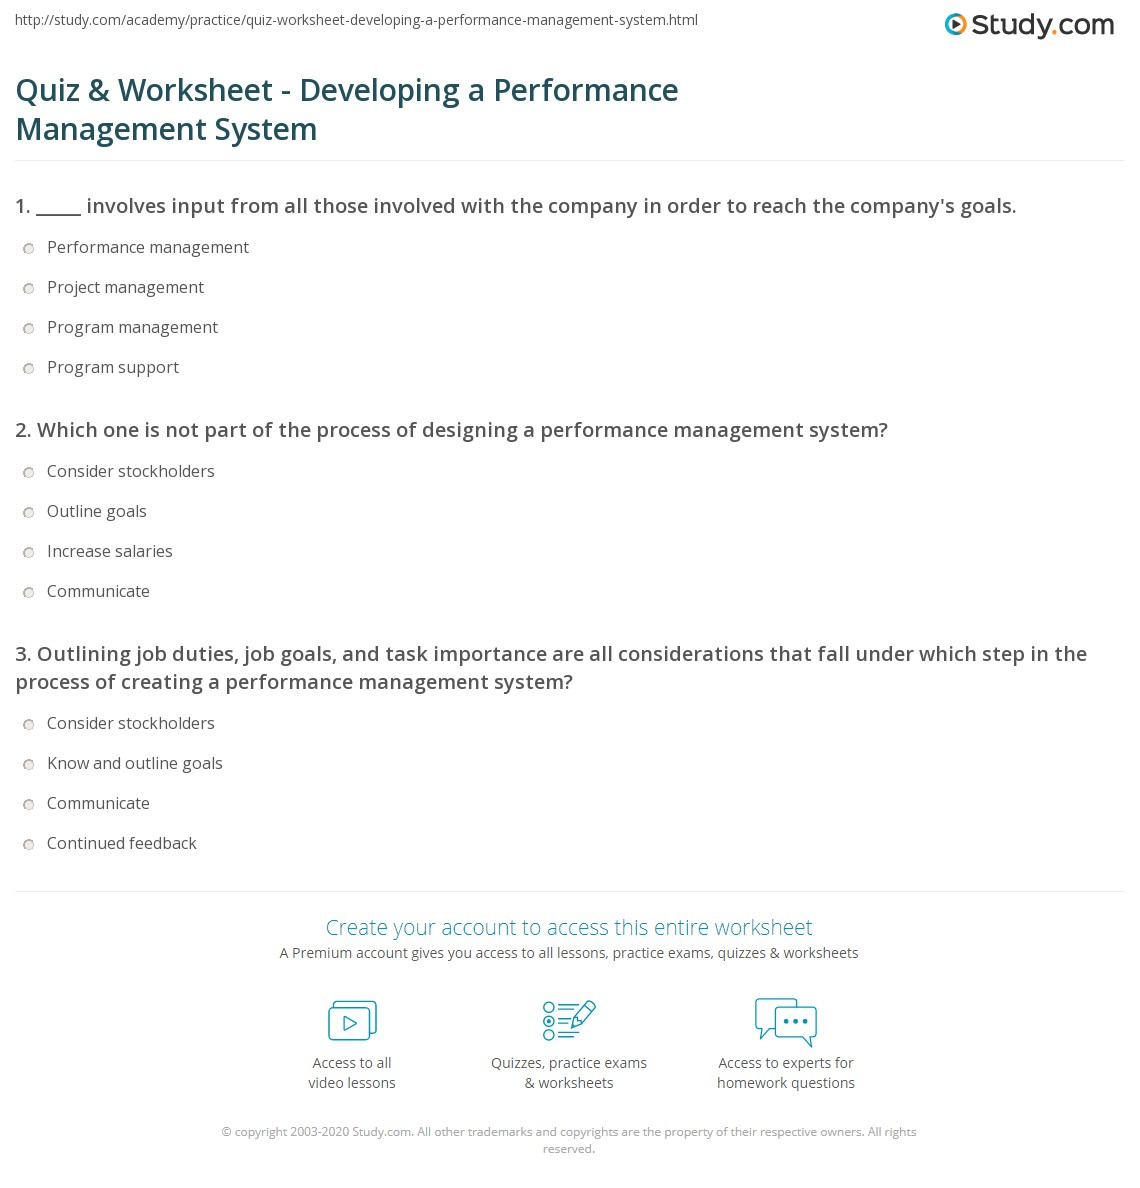 Developing a performance system